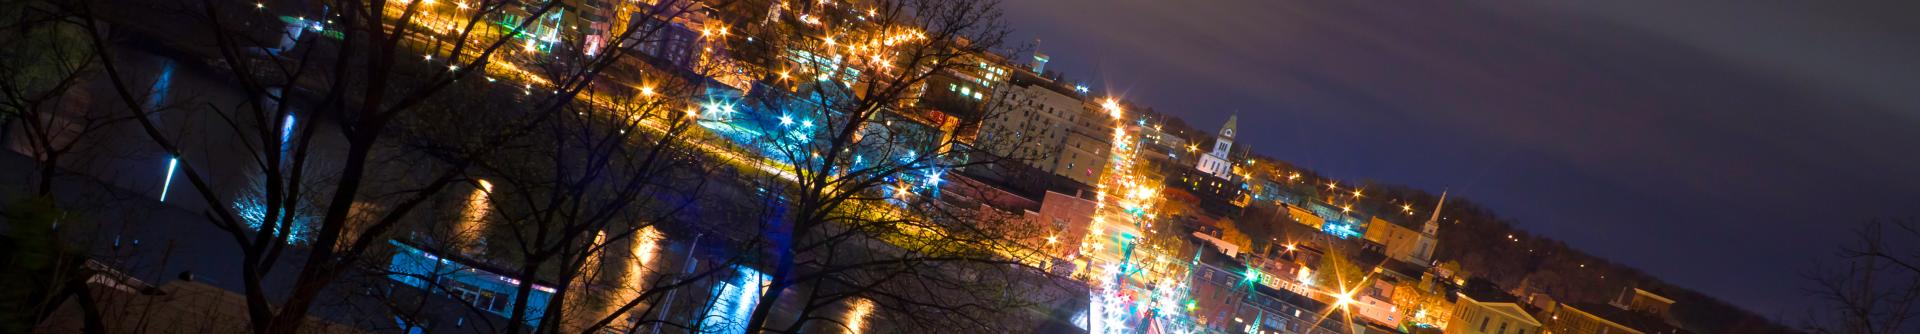 Easton at Night Discover Lehigh Valley